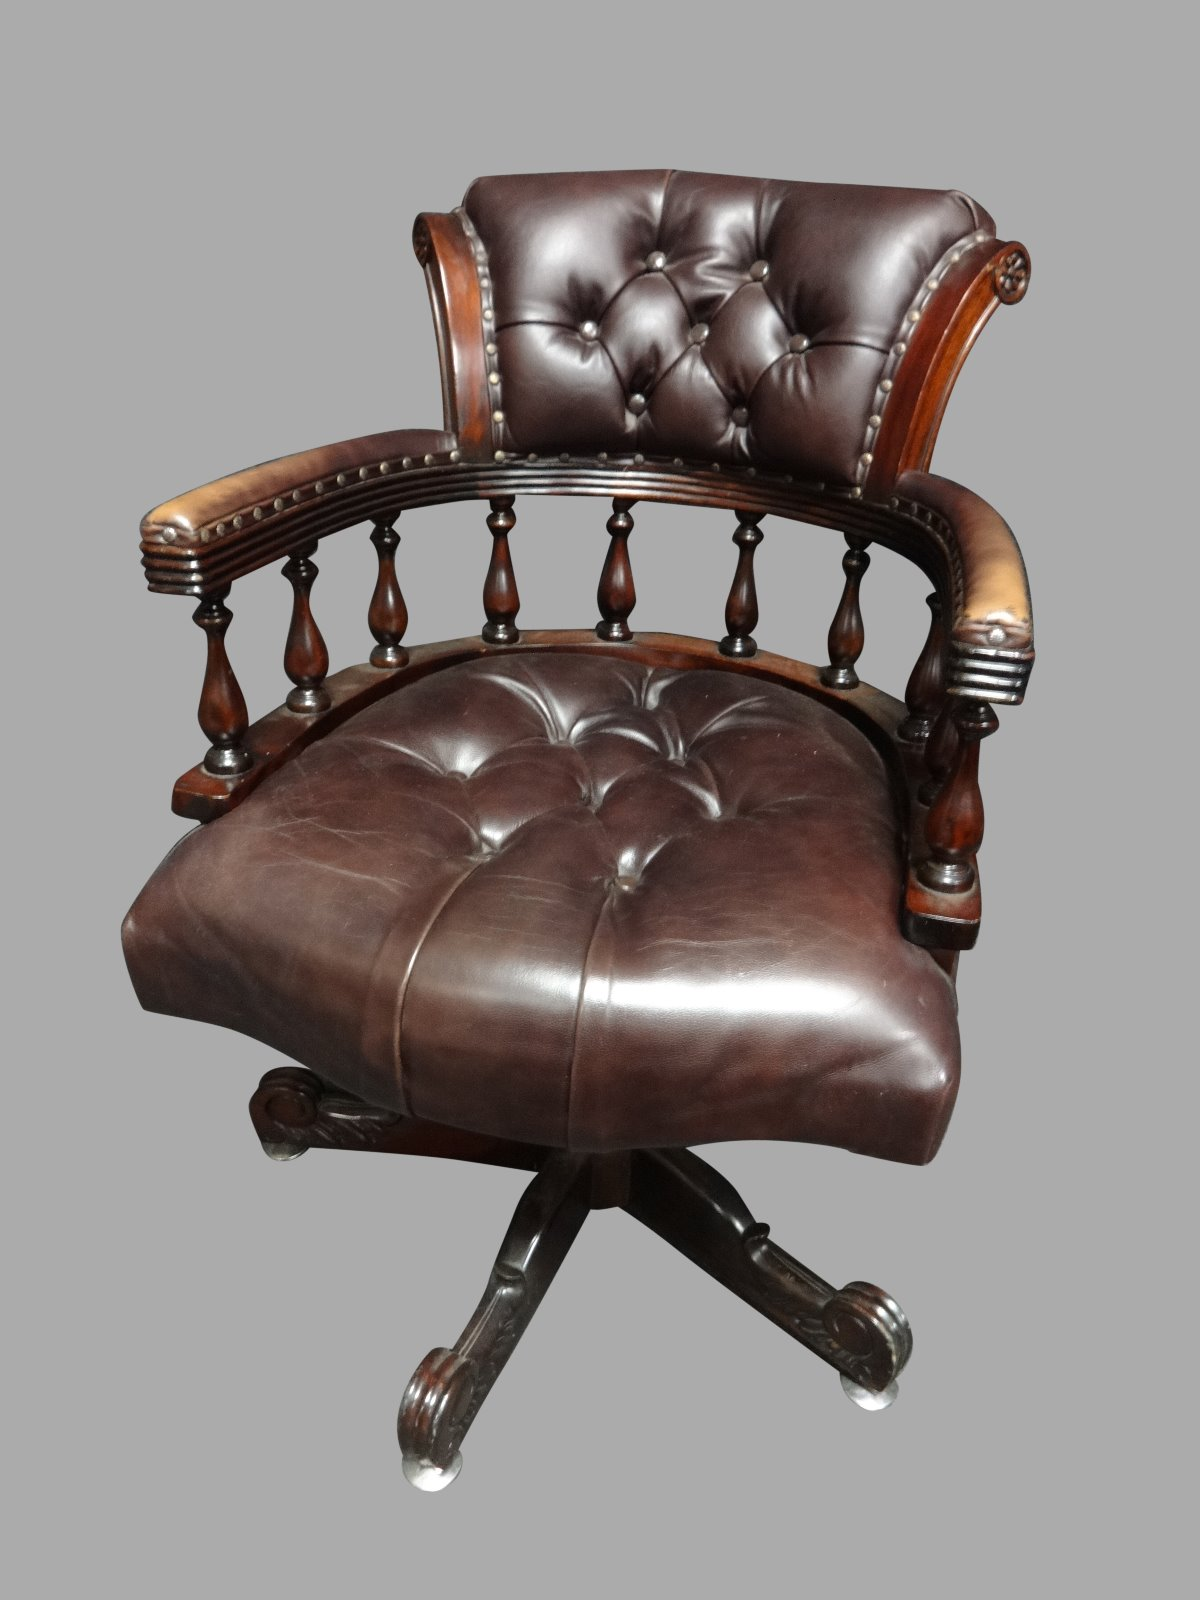 Brown Leather & Mahogany Desk Chair c.1950 (1 of 1)